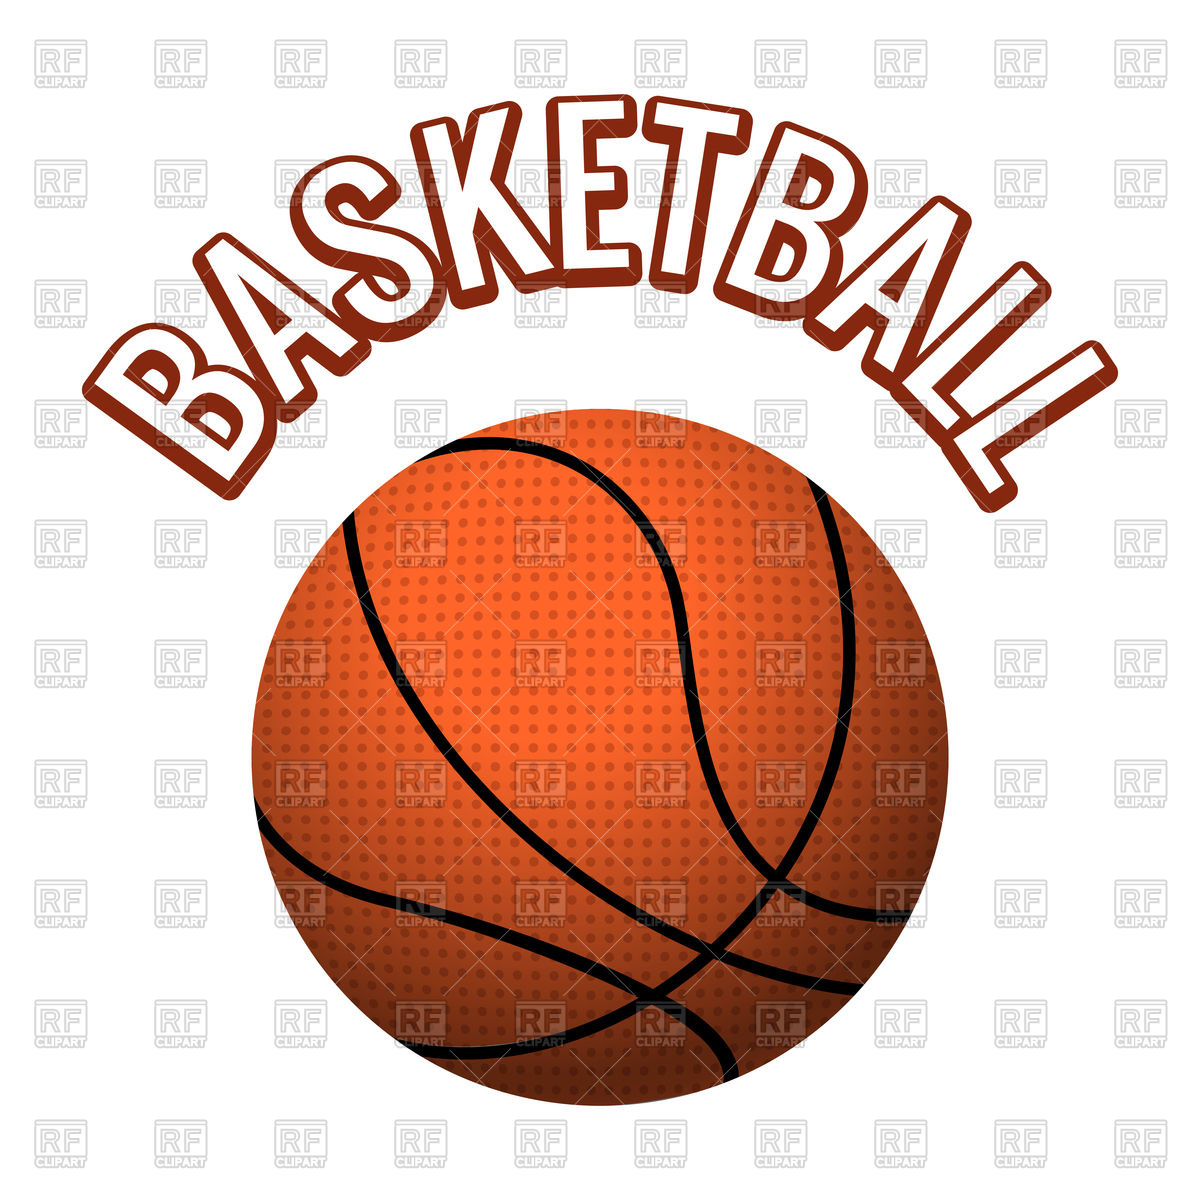 1200x1200 Textured Basketball Ball Isolated On White Background Royalty Free